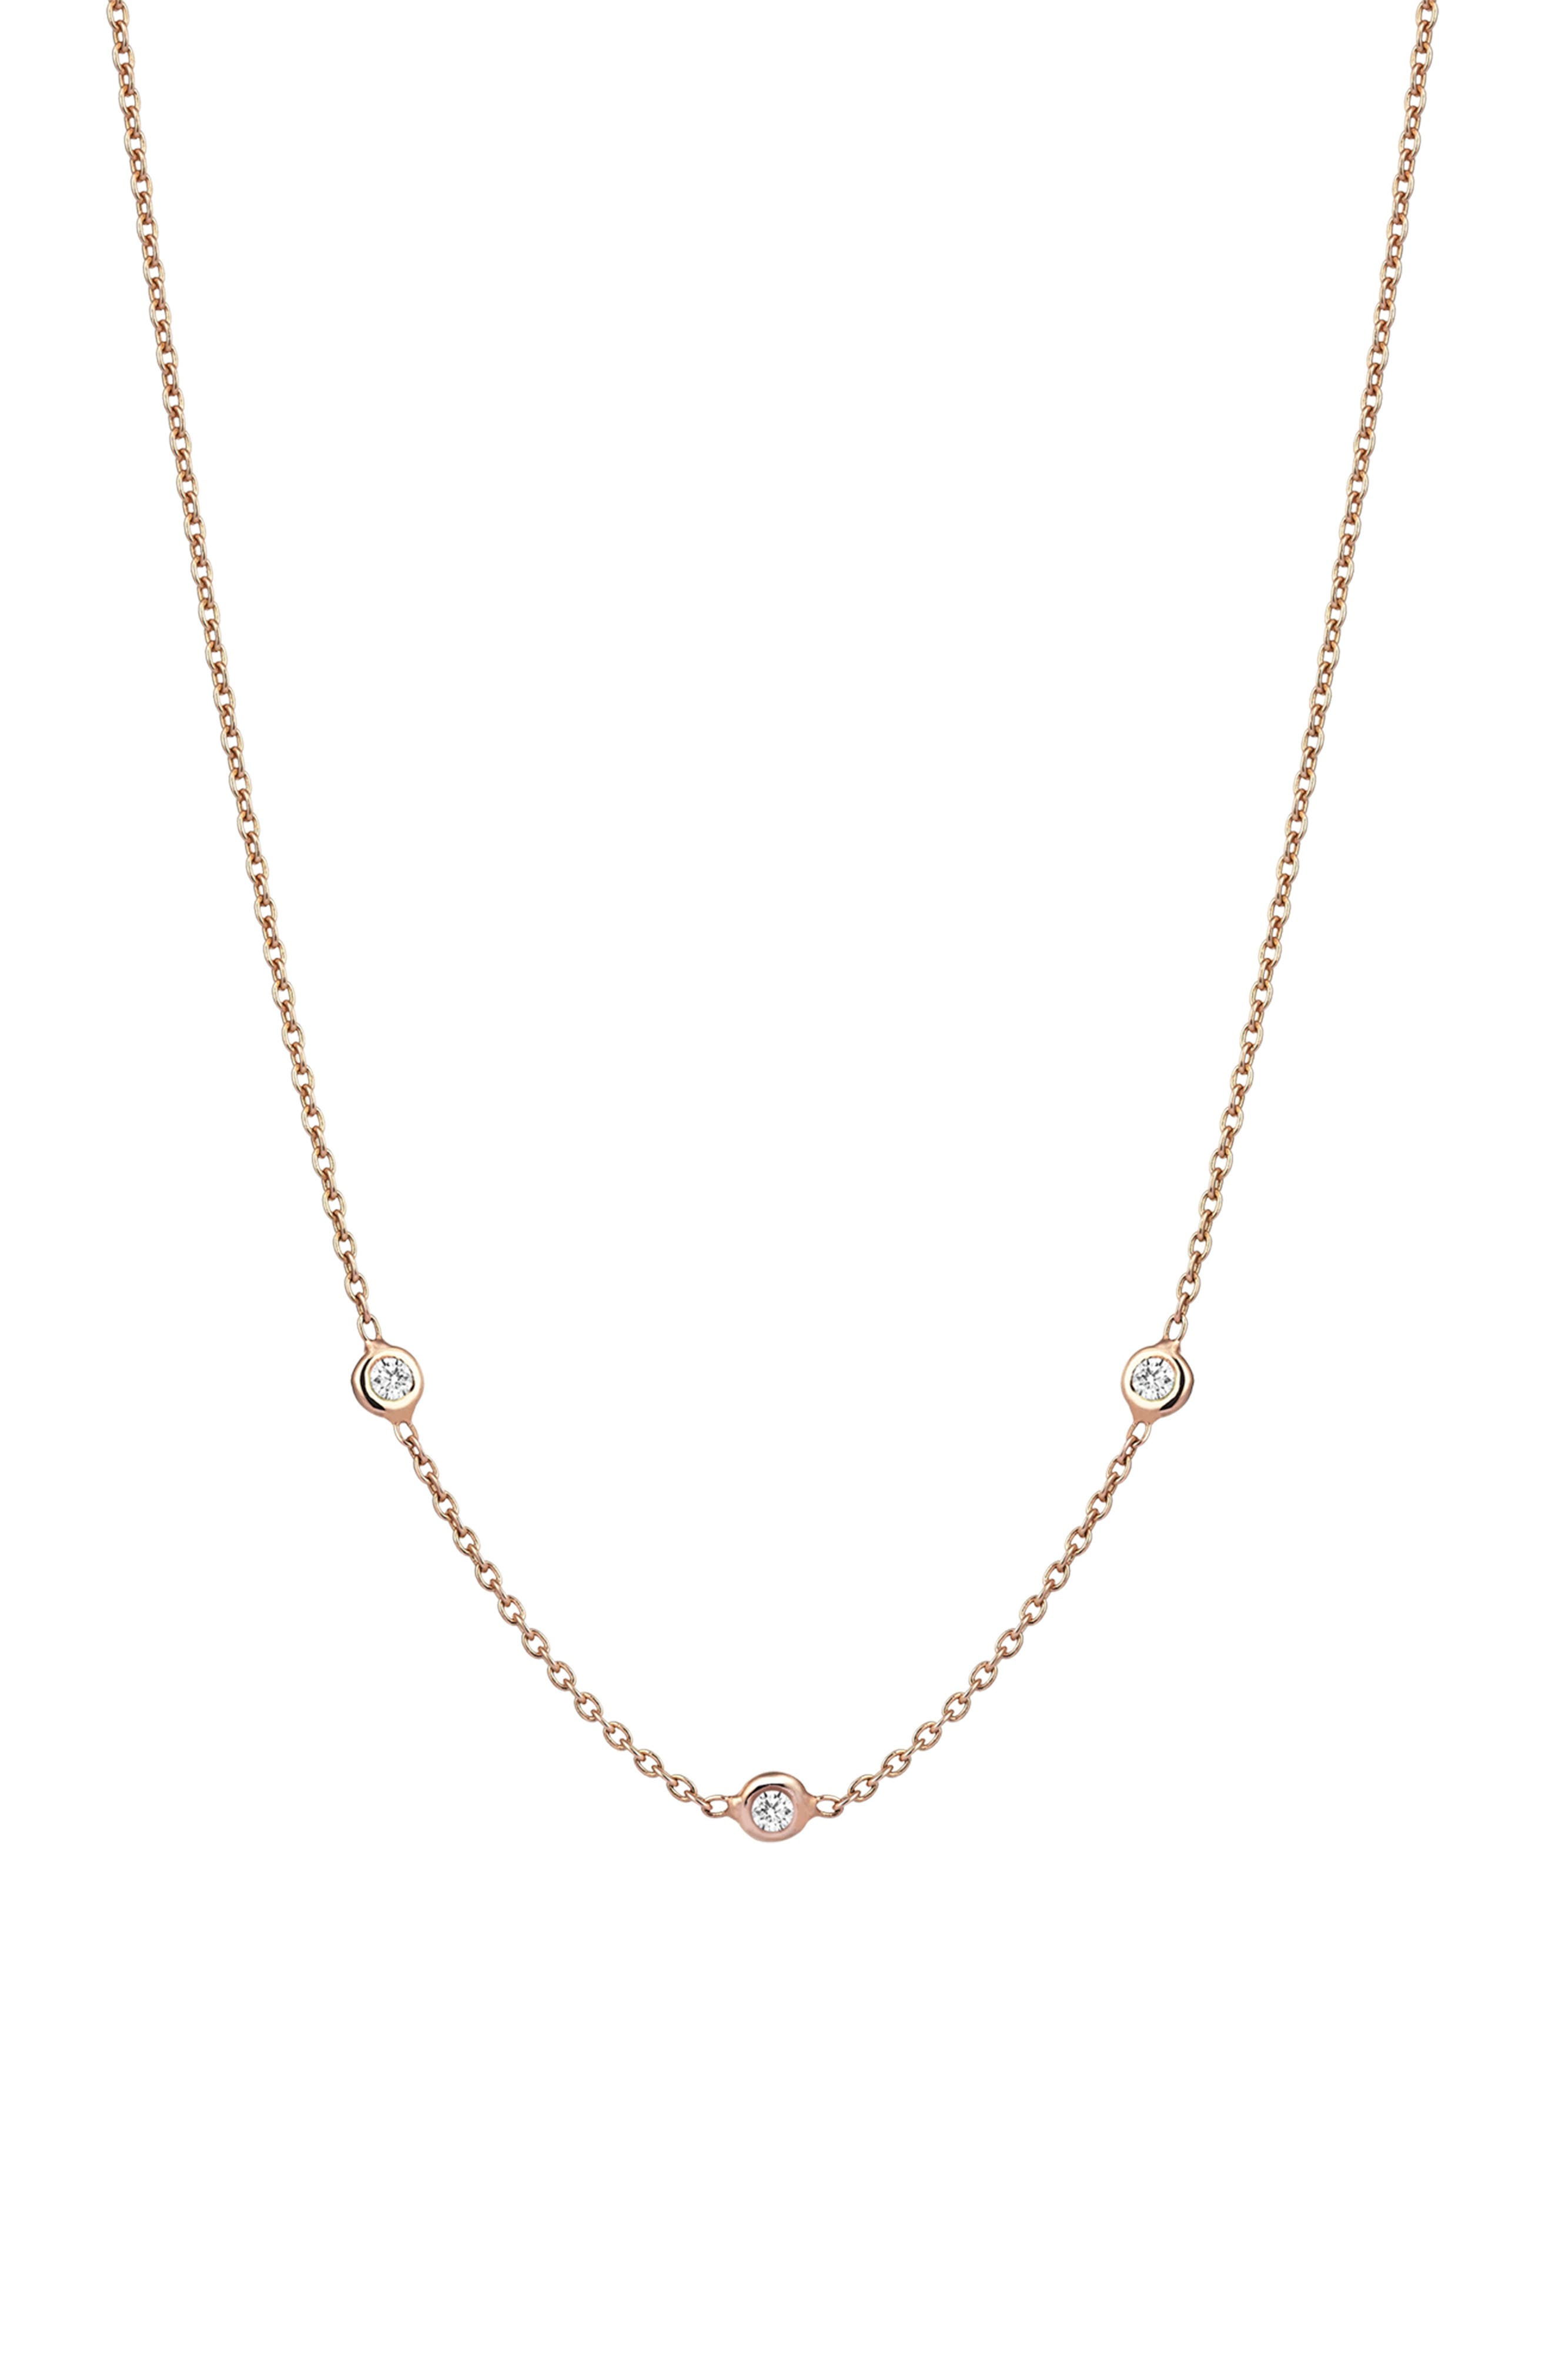 Main Image - Kismet by Milka Solitaire Diamond Necklace